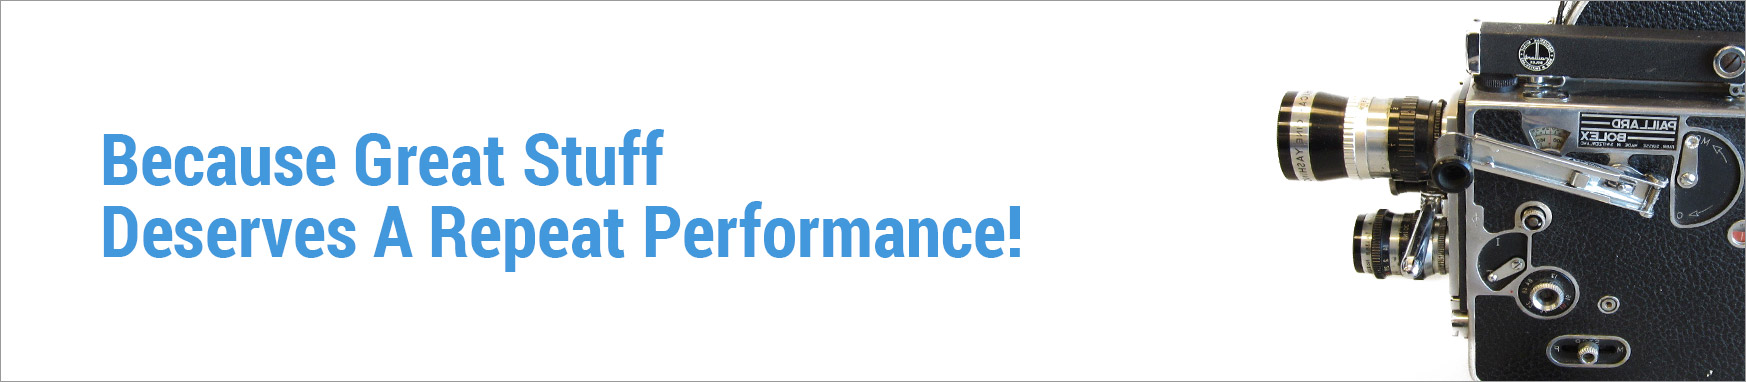 because great stuff deserves a repeat performance.